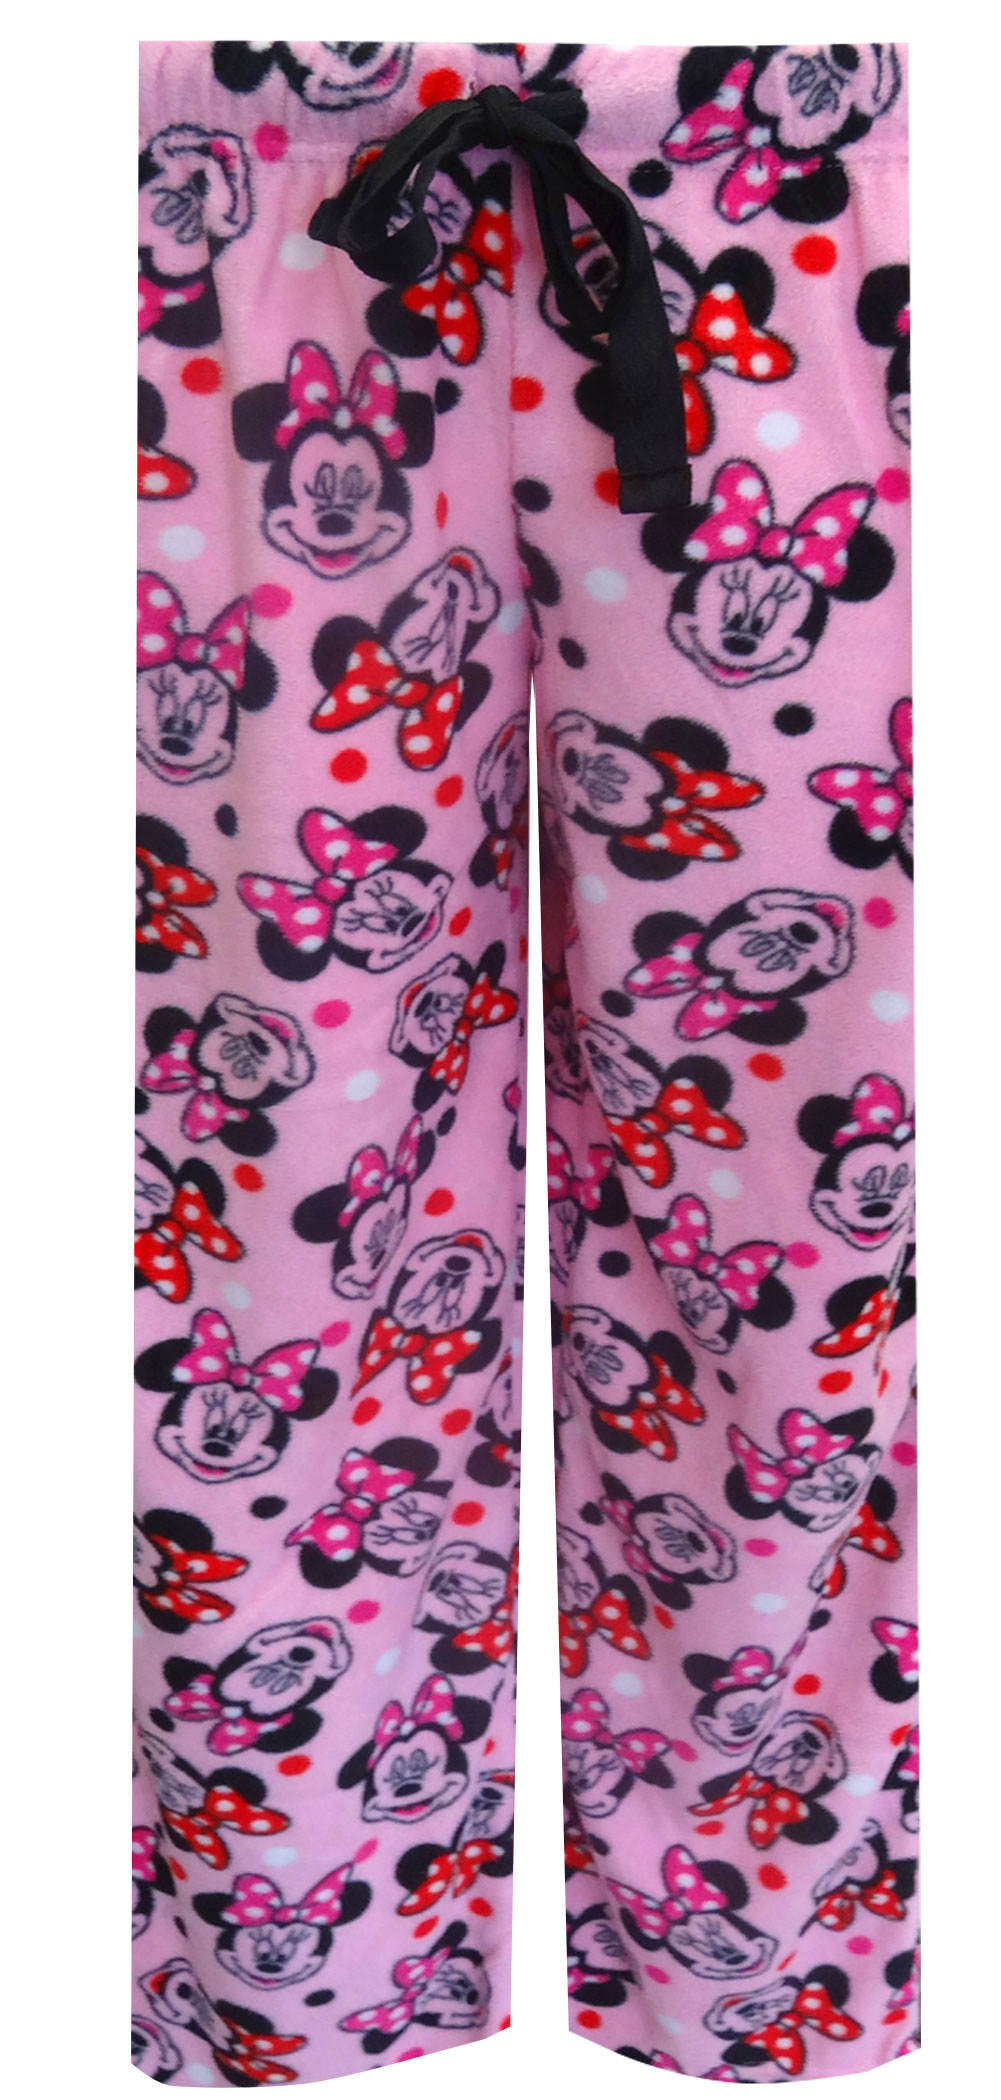 Image of Disney's Minnie Mouse Pink Fleece Loungepant for women